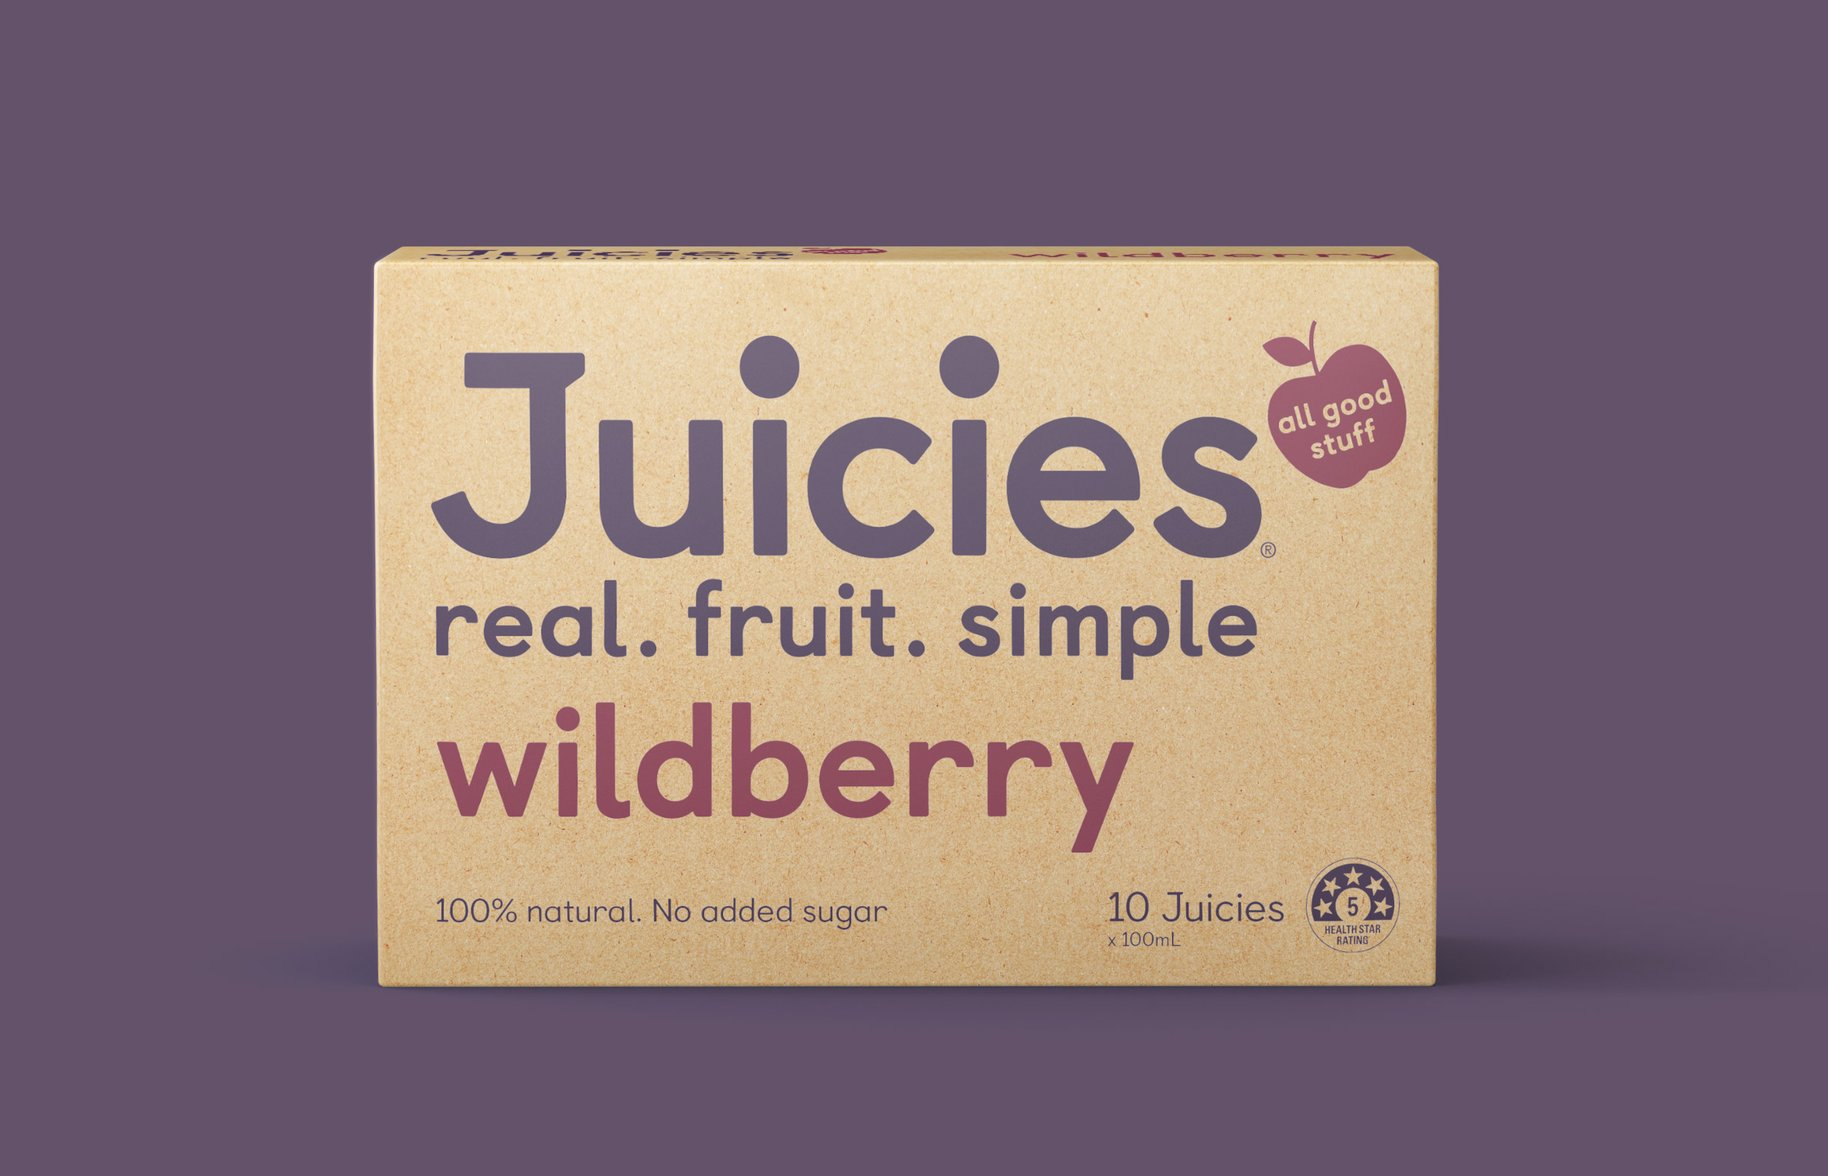 Juicies Wildberry Box